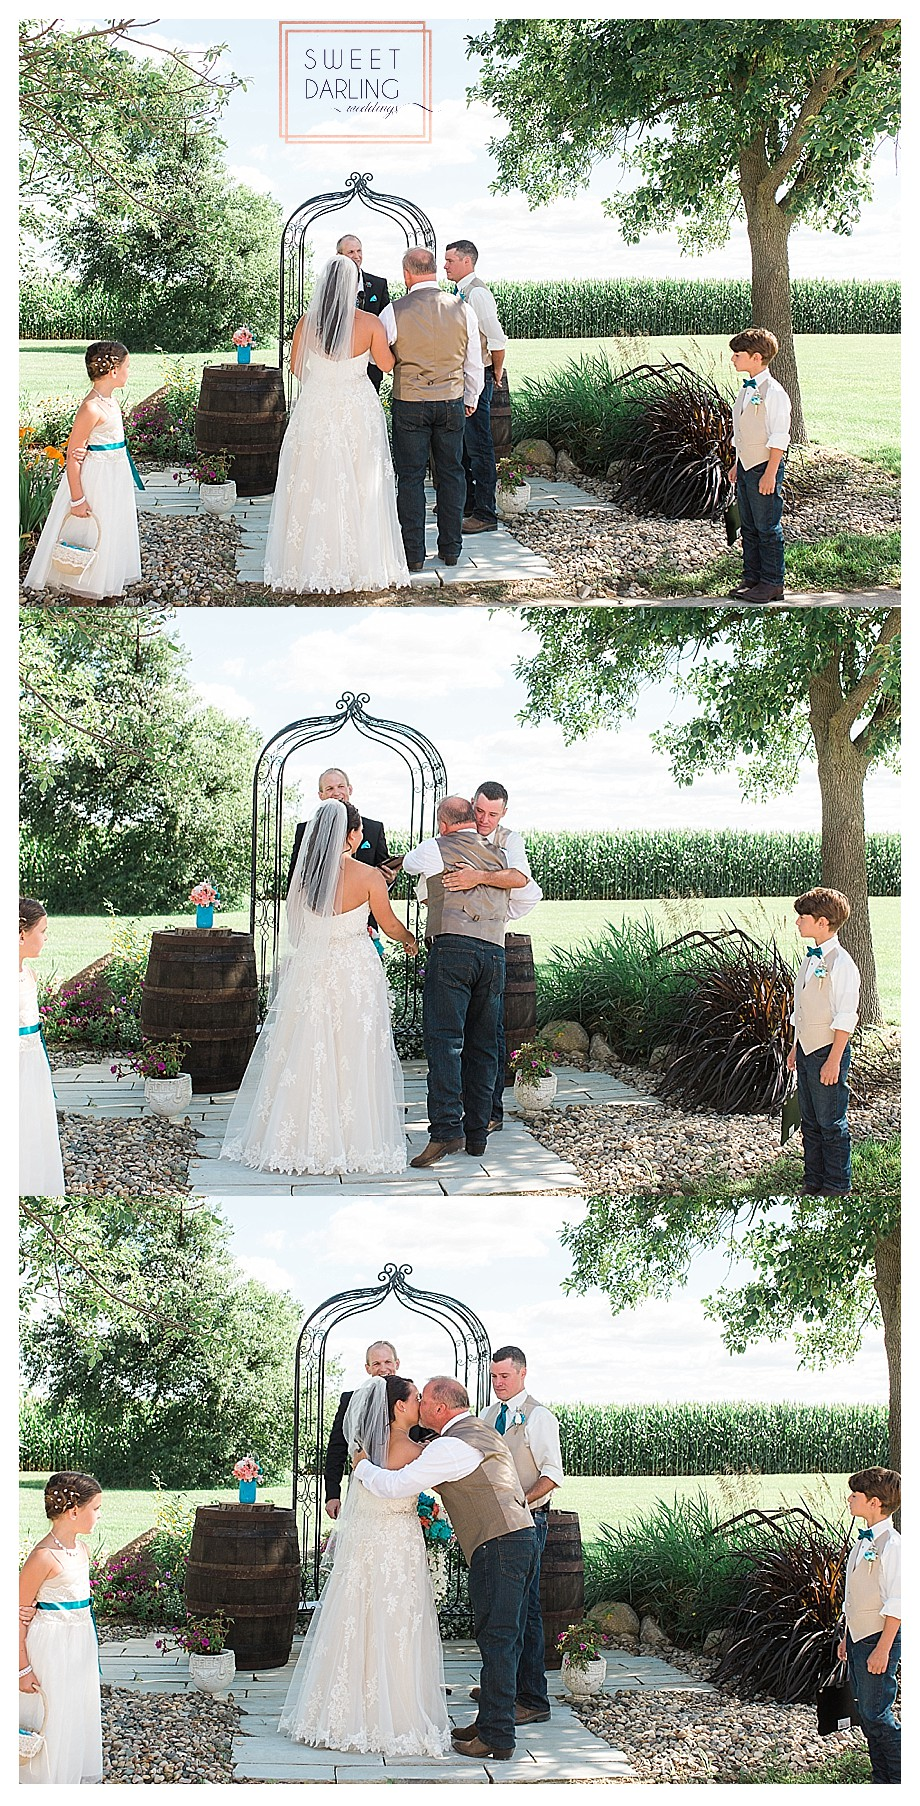 wedding-barn-farm-horses-sparkler-exit-Engelbrecht-Farm-Paxton-Illinois-Sweet-Darling-Weddings-Photographer_0471